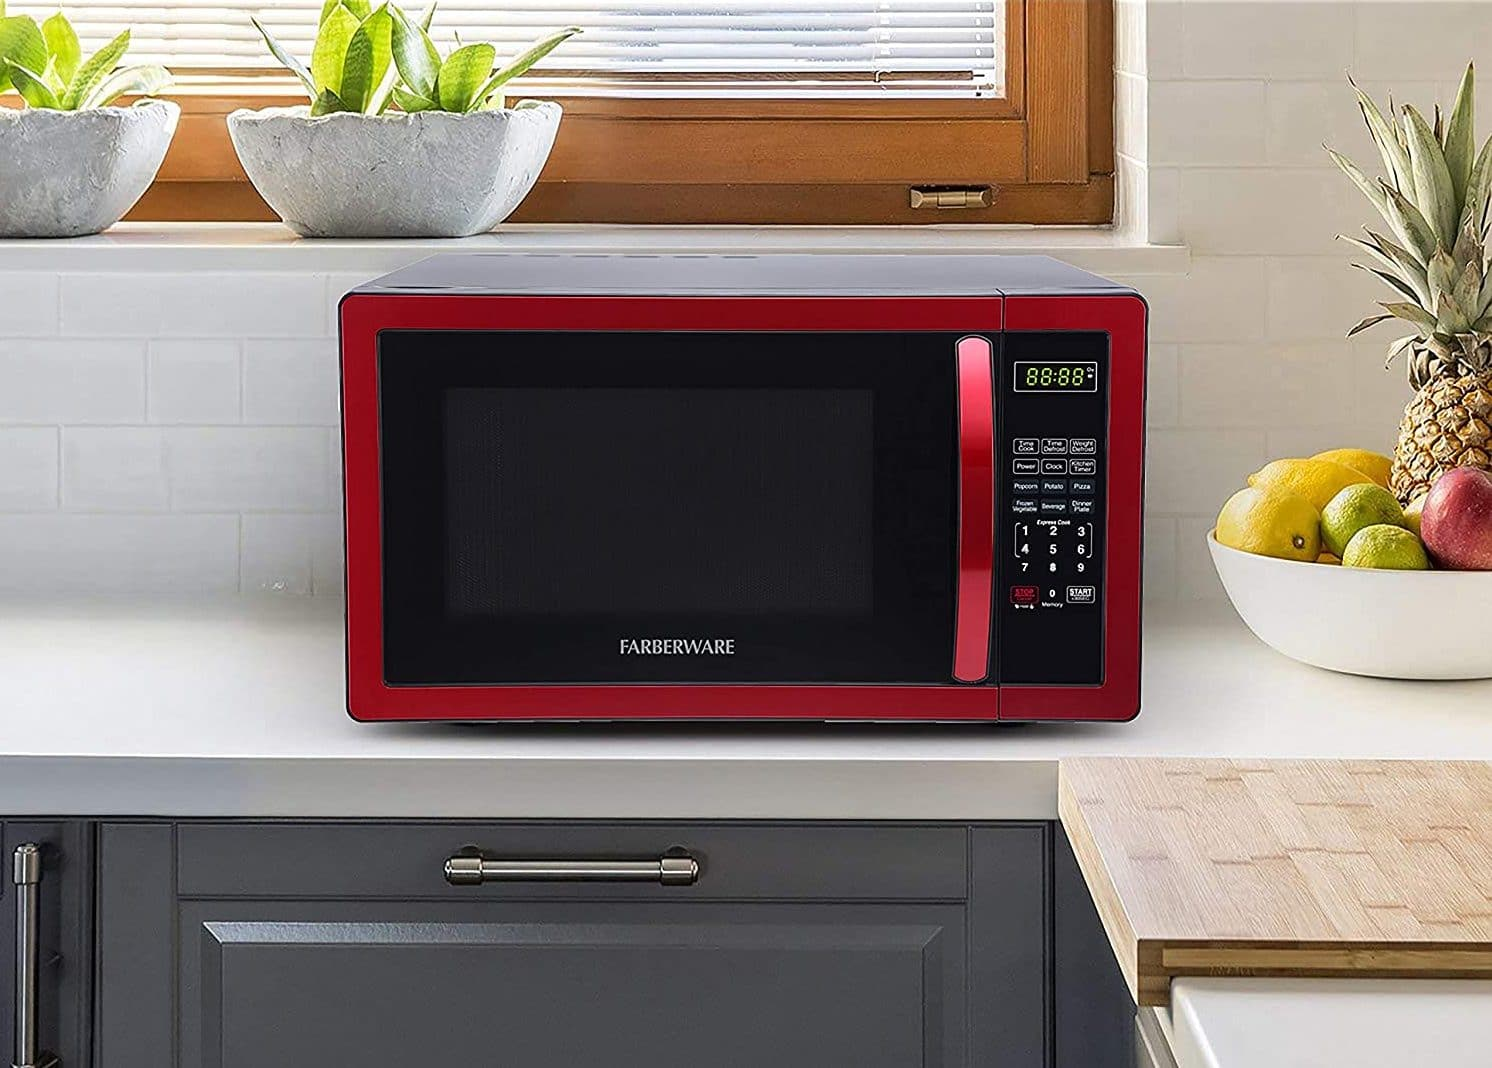 Best 1000 watt microwave oven featured